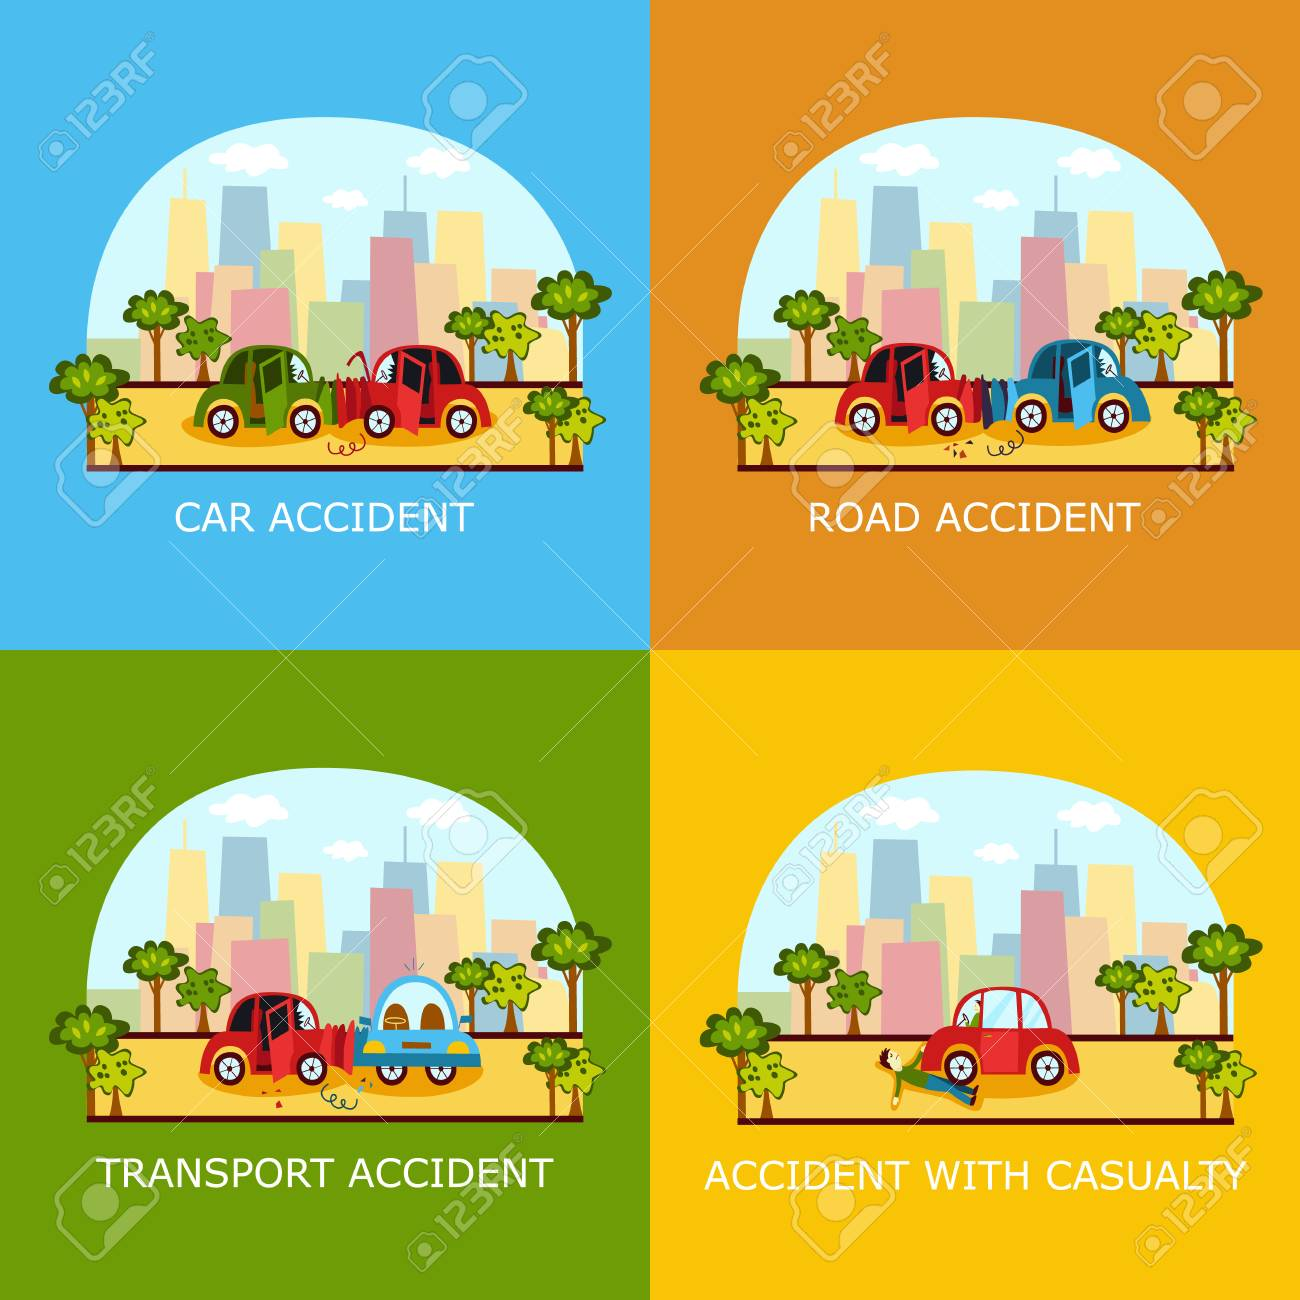 Set of car accident banners - head on, rear end, side collision